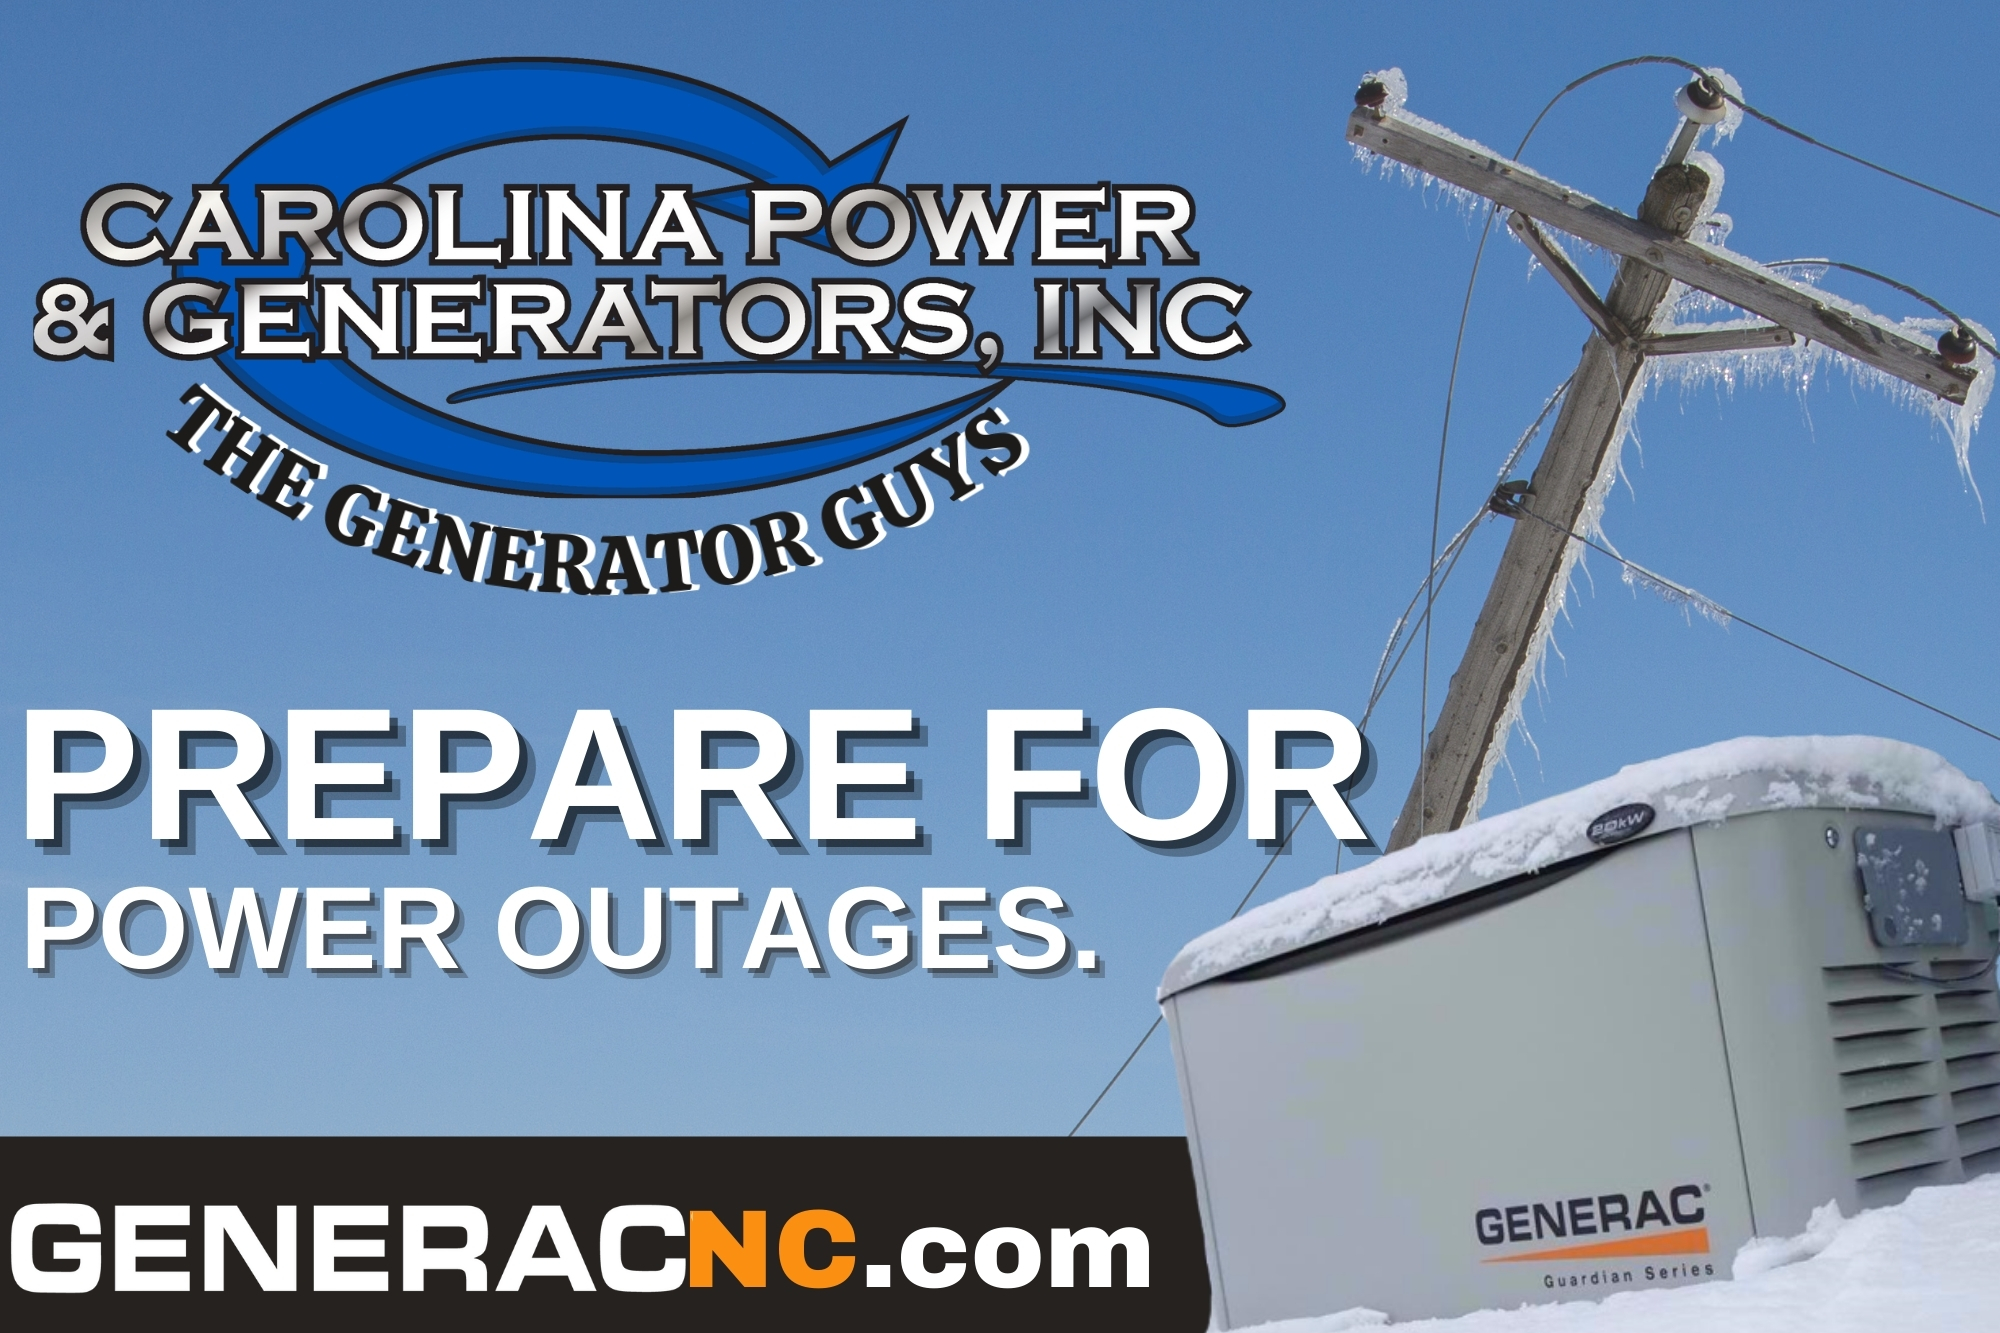 Logo for Carolina Power and Generators, Inc. Advertising to prepare for power outages. Backed by images of an ice covered power pole and a snow covered generator.